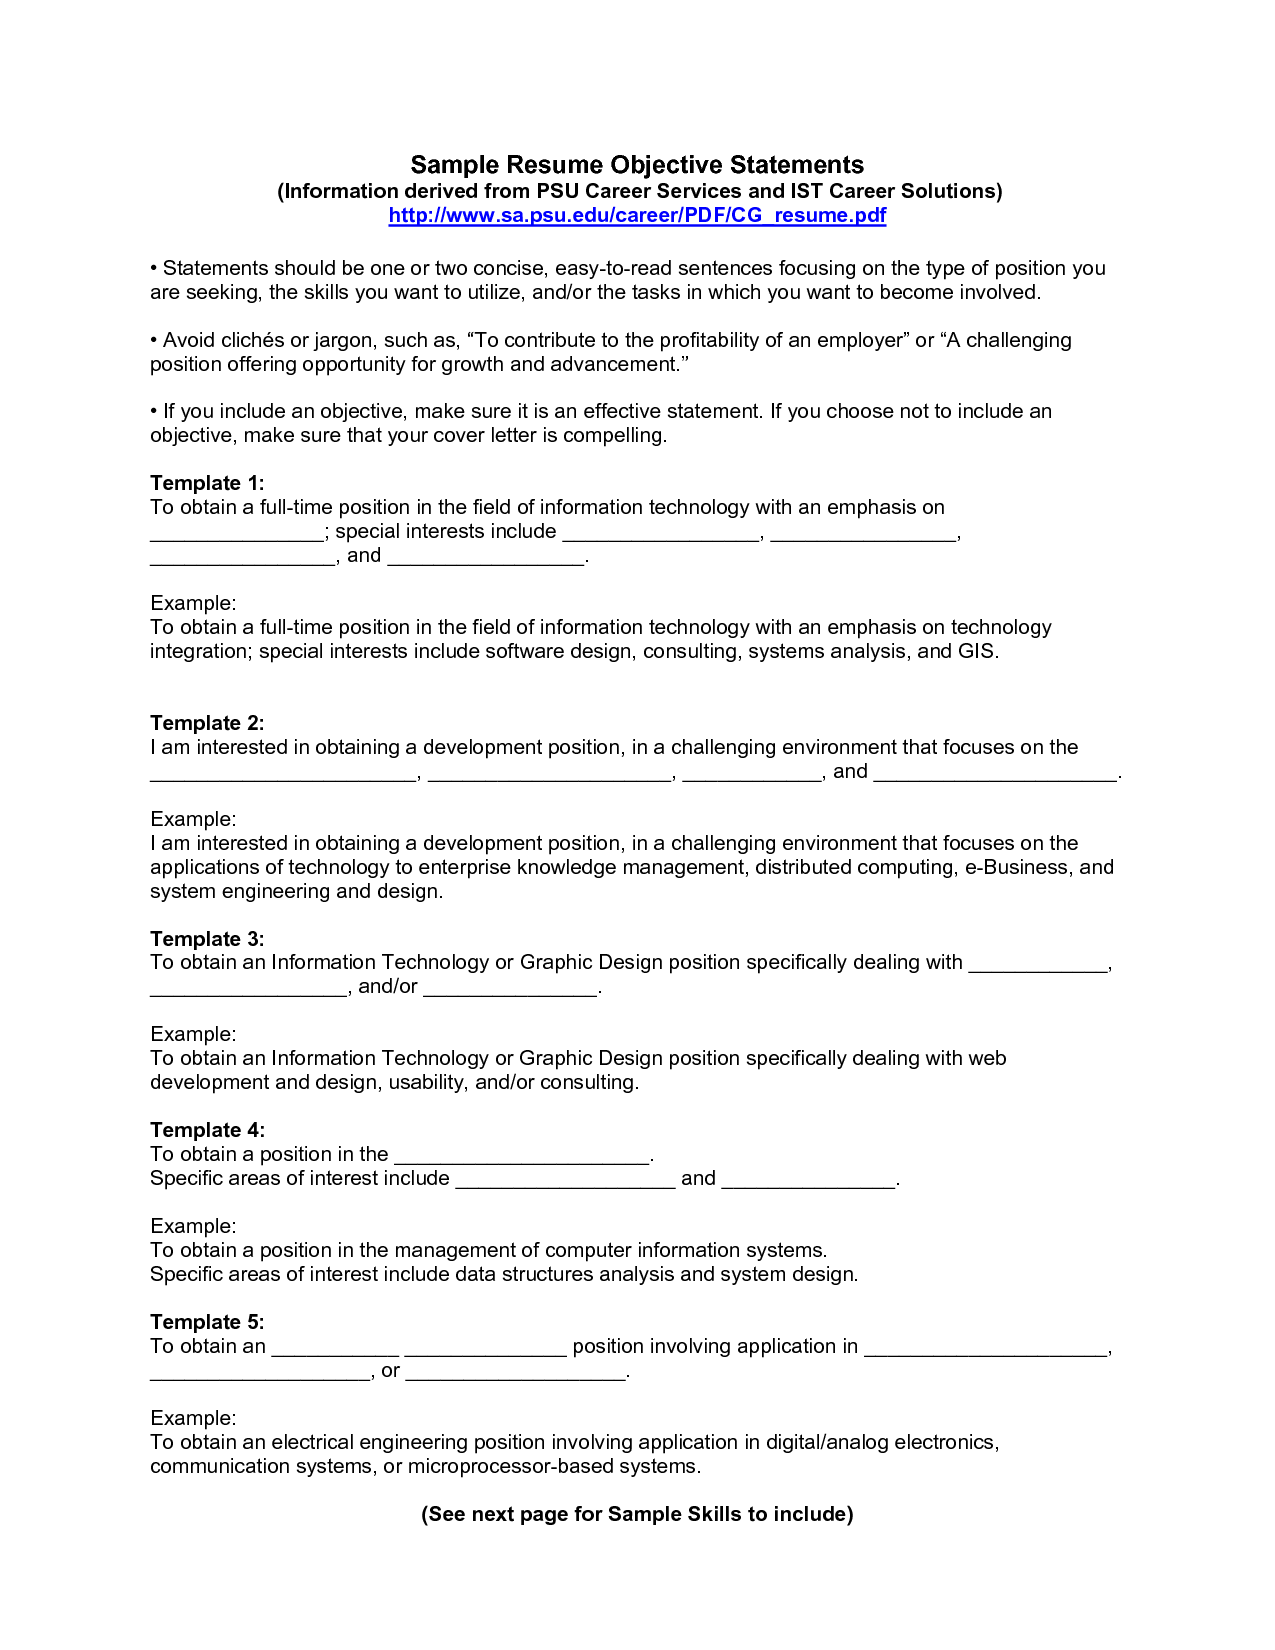 Call Center Floor Manager Sample Resume Interesting Resume Objective Statement For Teacher  Httpwww.resumecareer .